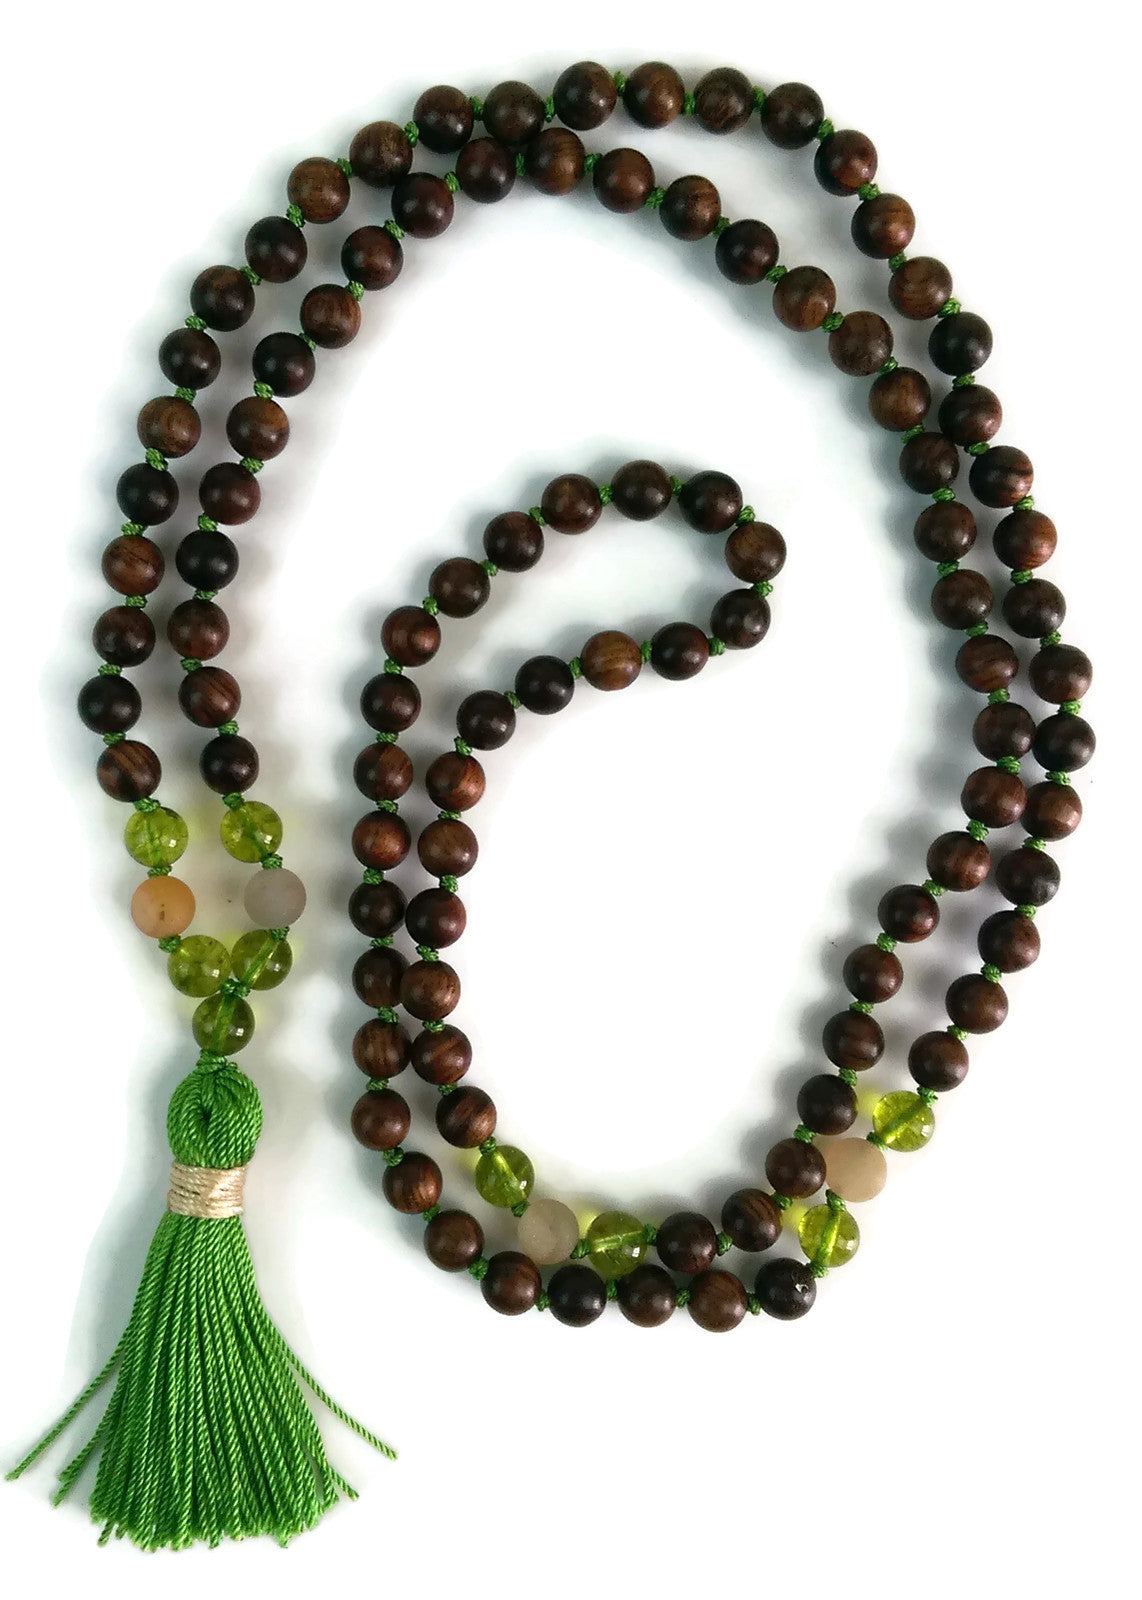 Balance Collection Sandalwood, Peridot and Frosted Agate Traditional Knotted 108 Meditation Mala Necklace with Green Tassel